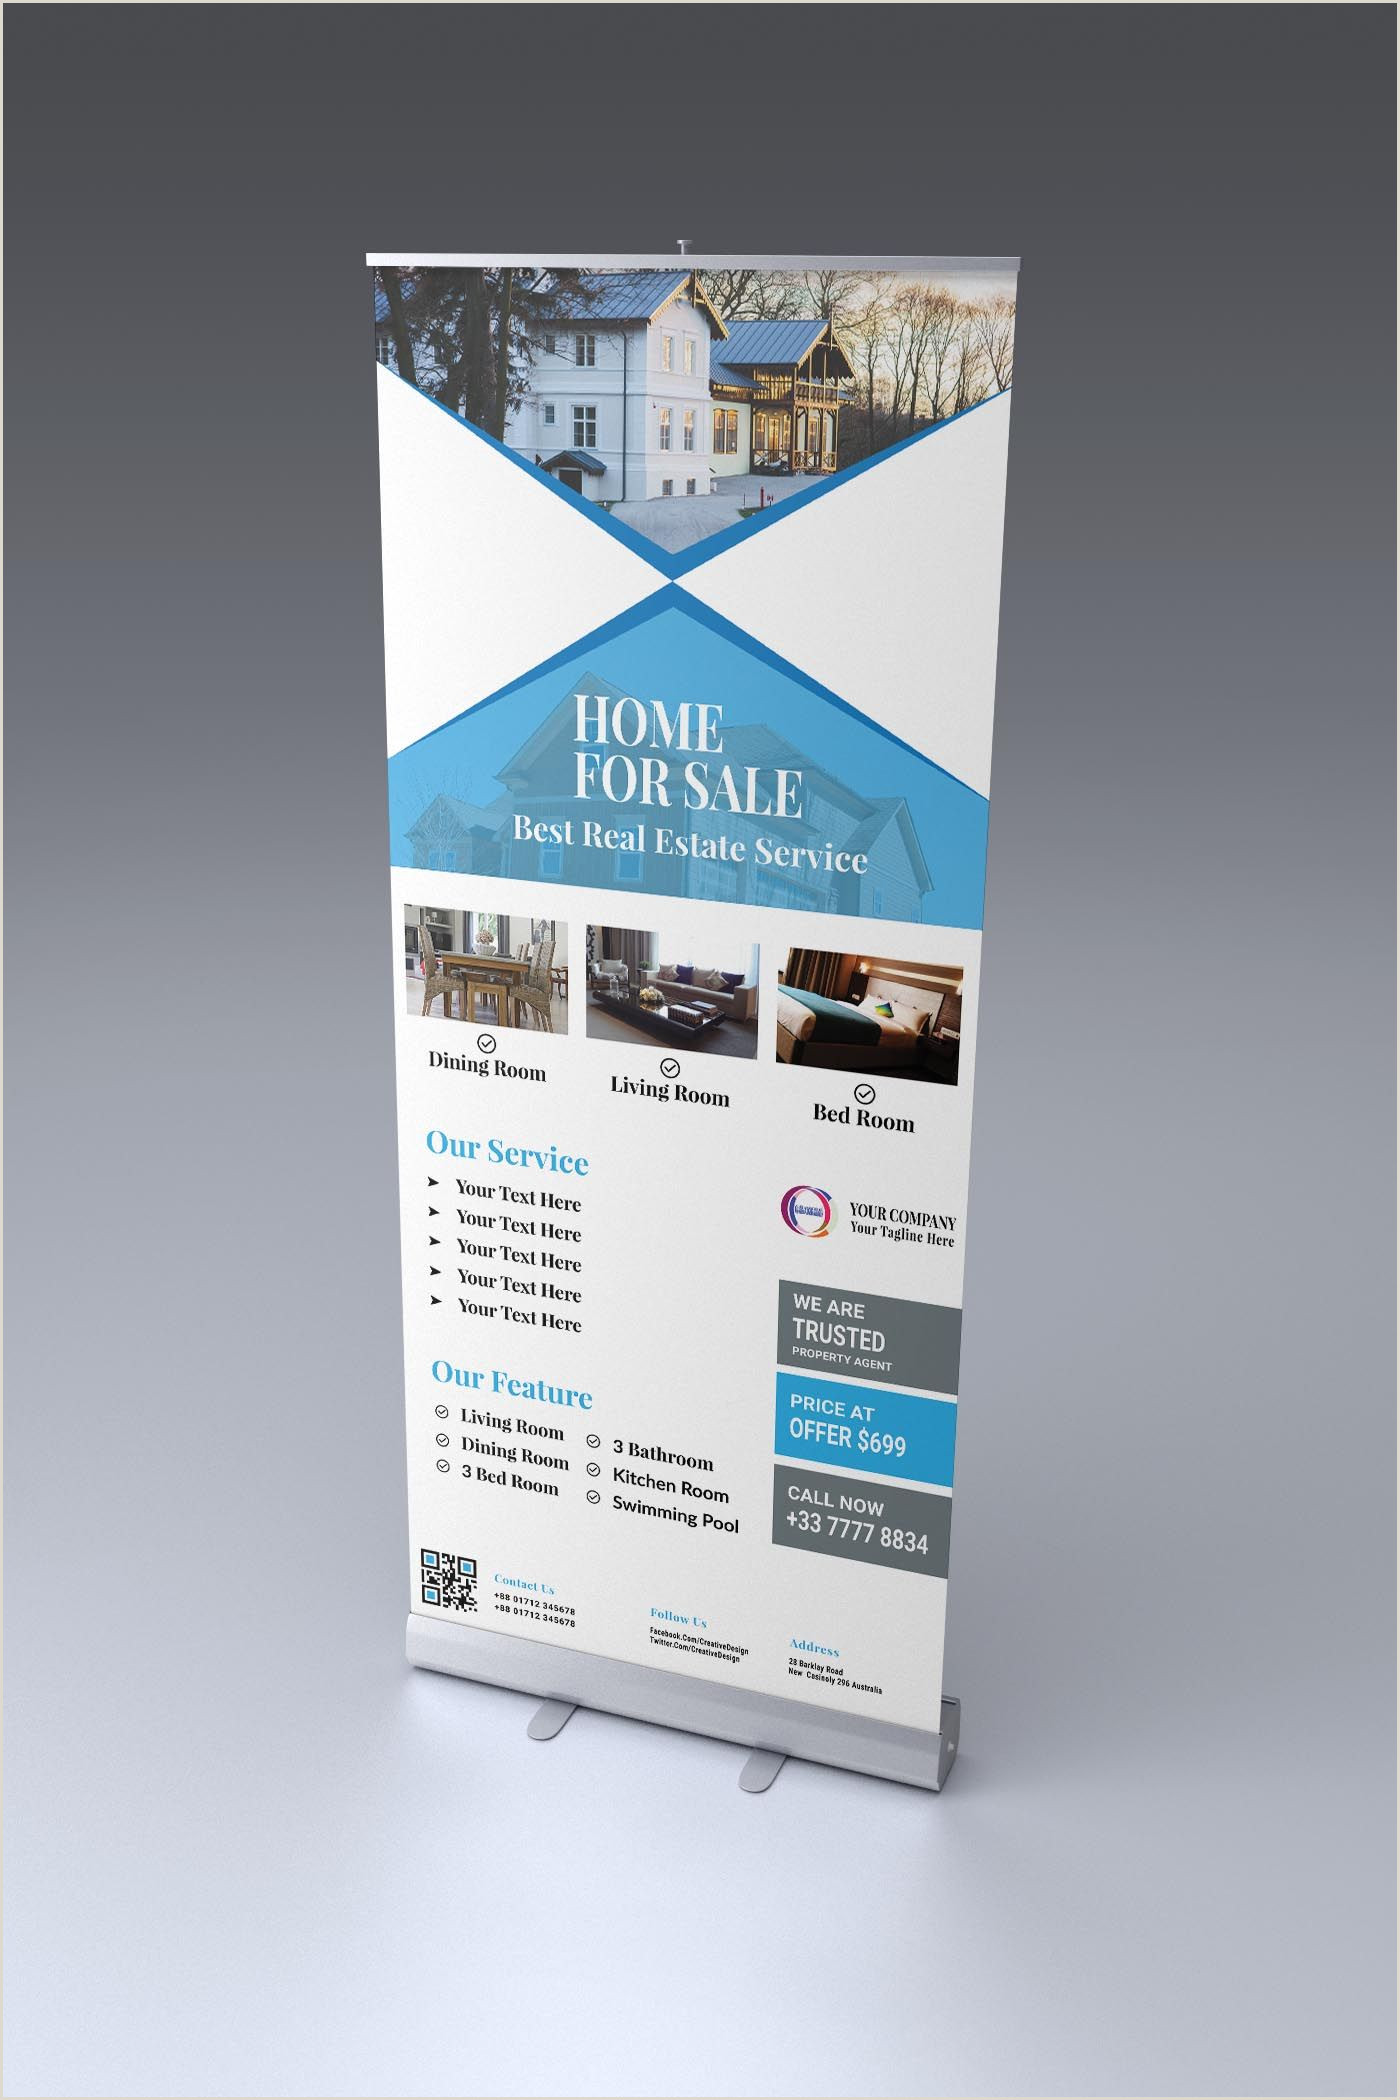 Retractable Banner Designs Looking For A Roll Up Banner Design The Image